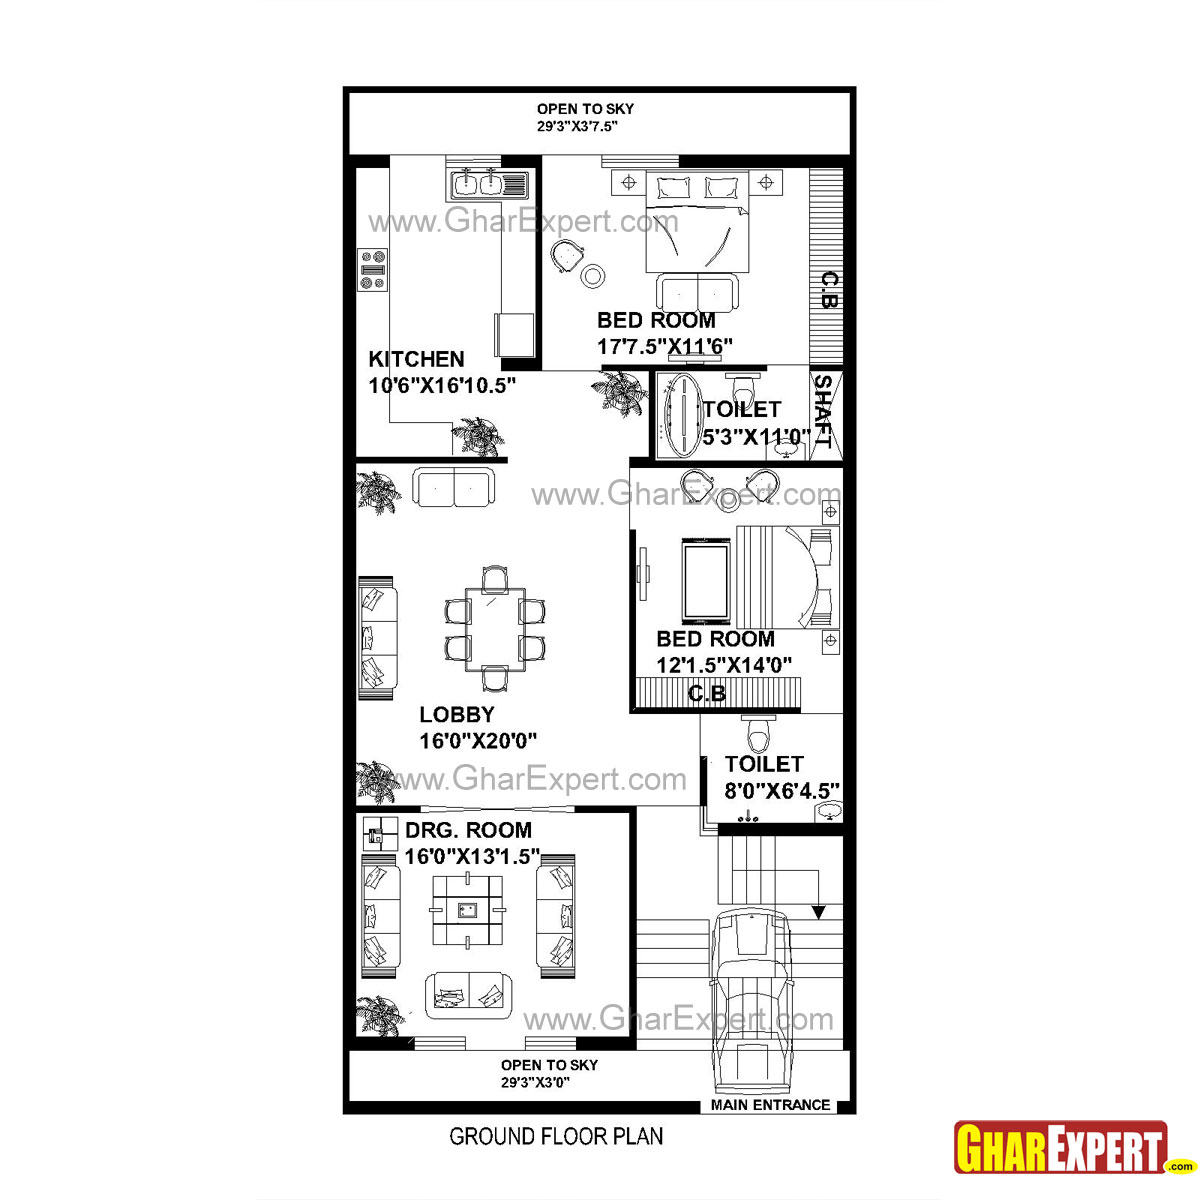 House Plan For 33 Feet By 40 Feet Plot Plot Size 147: GC 1310 Plan House Plan For 30 Feet By 60 Feet Plot (Plot